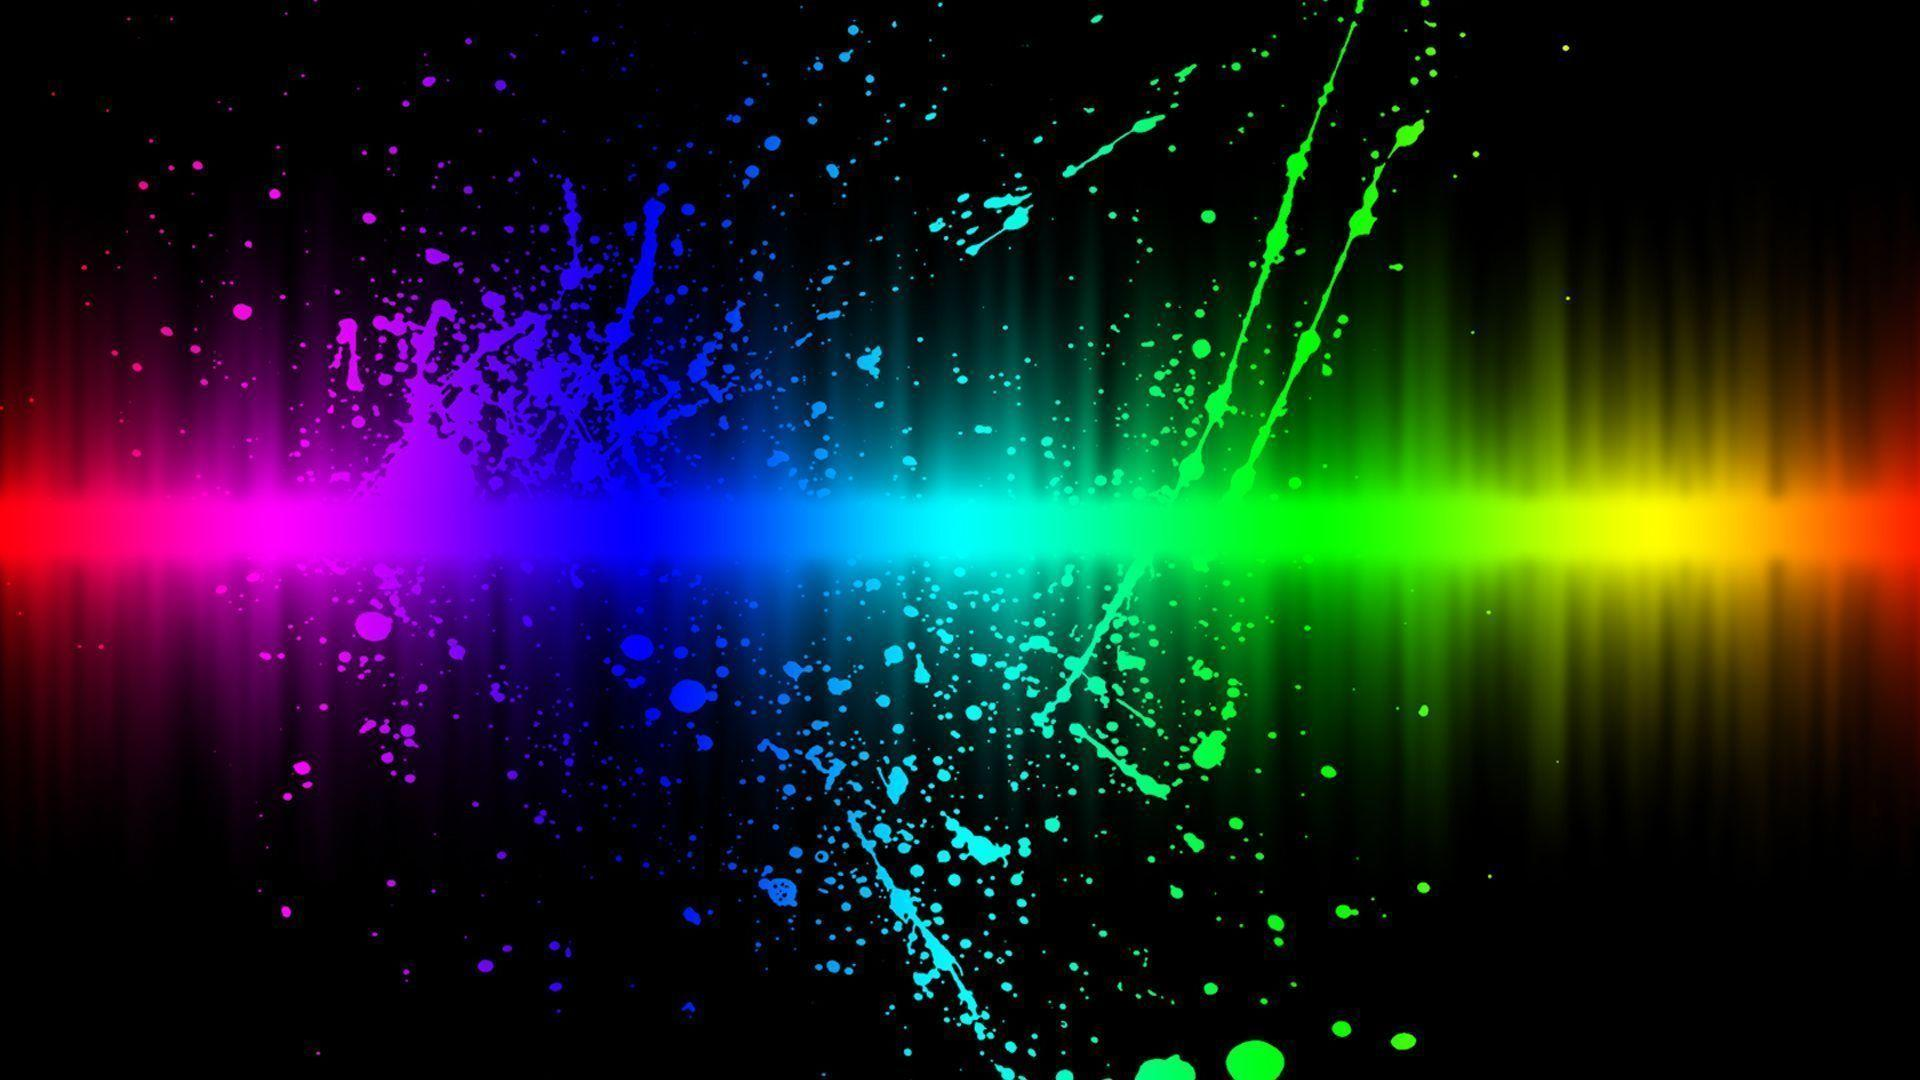 Colorful Background Hd Posted By Sarah Thompson